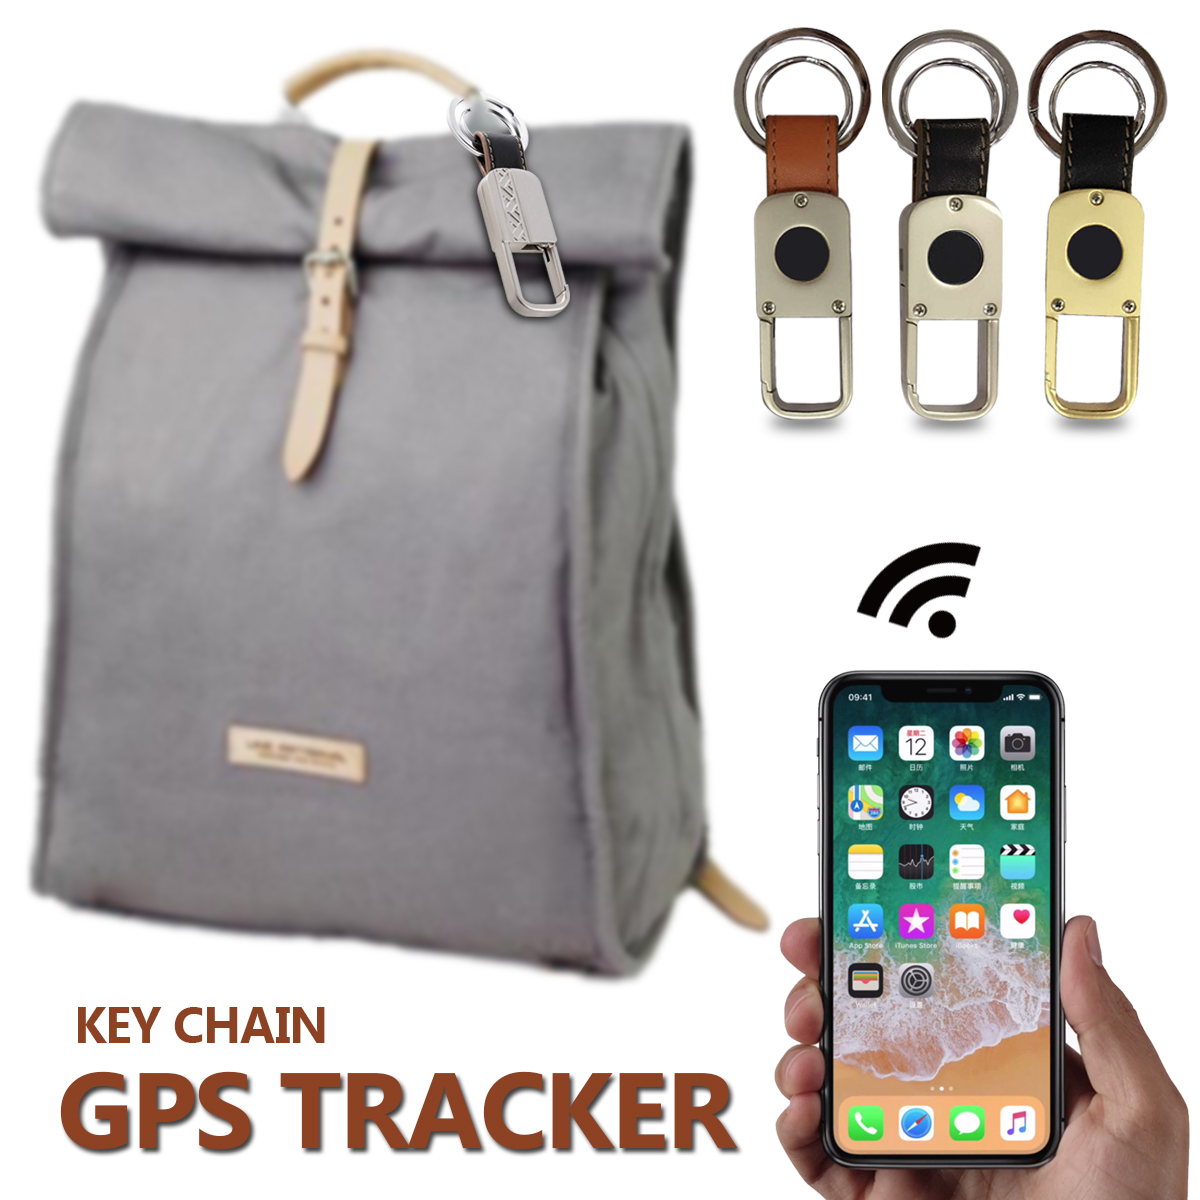 GPS Tracking Key Chain Ring Wireless bluetooth Anti-Lost Tracker Finder Alarm Device